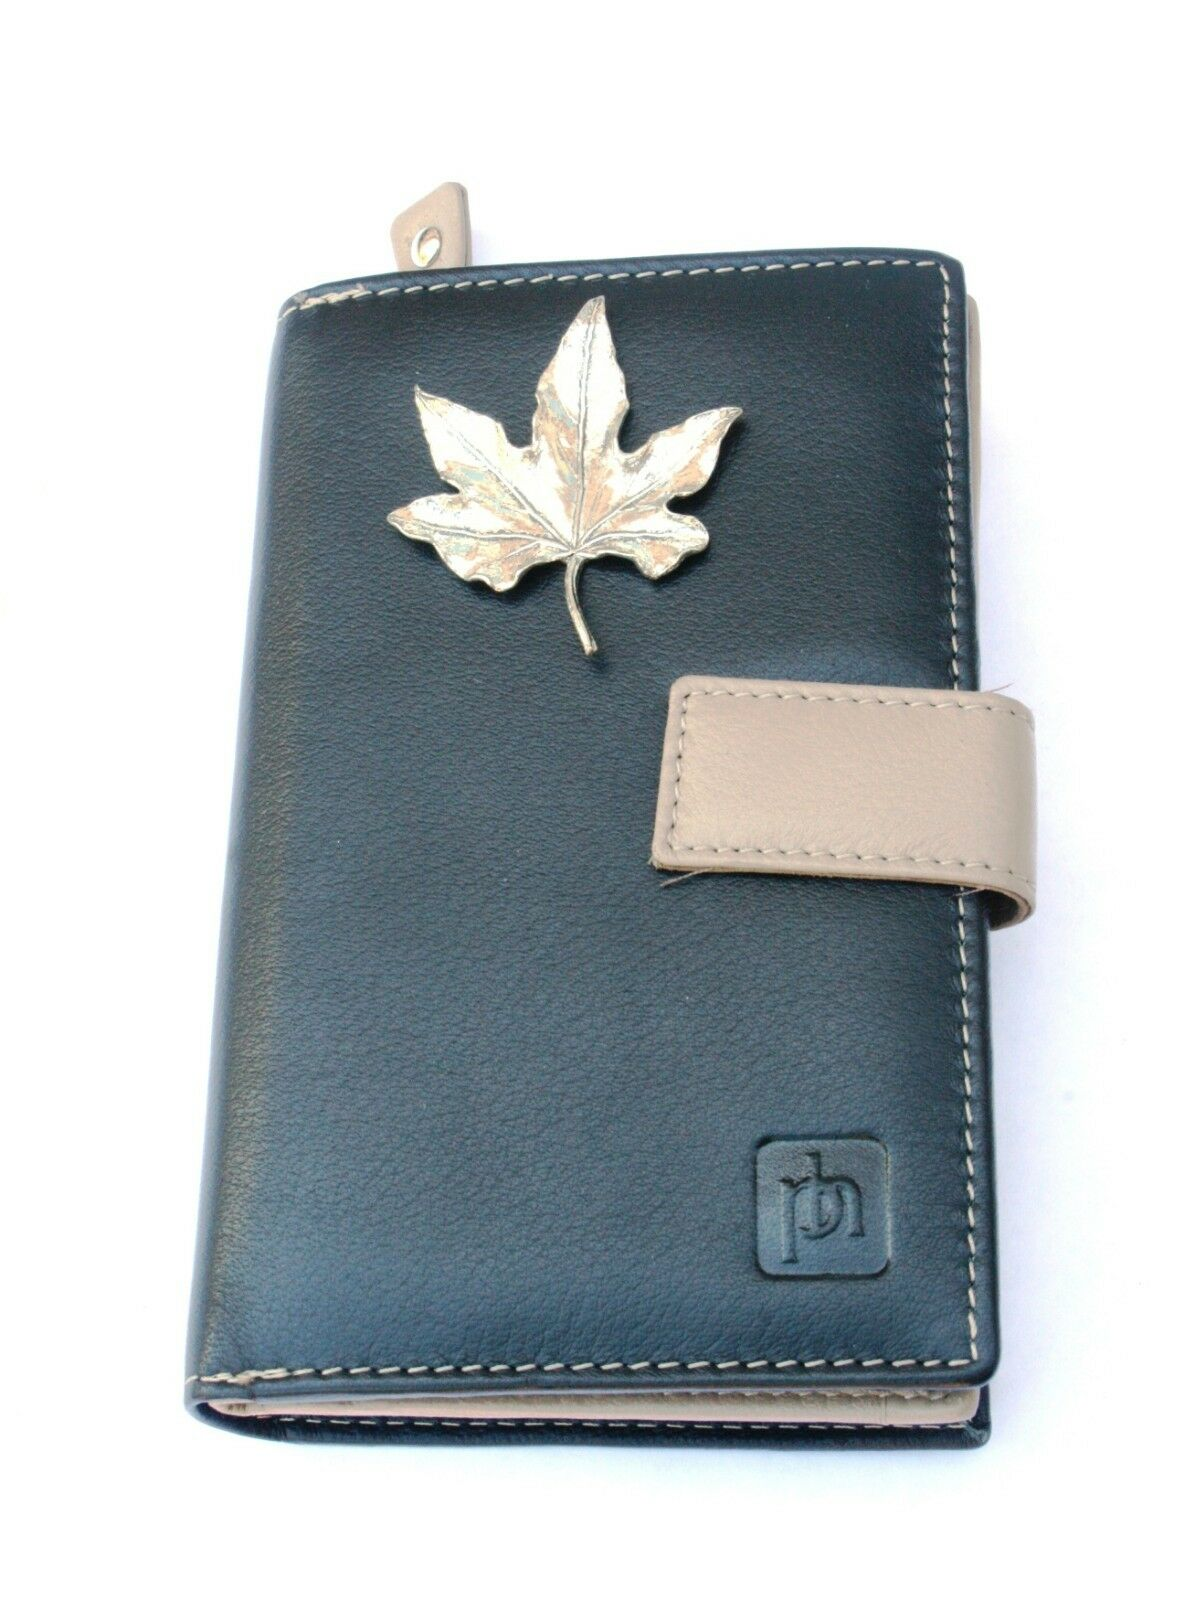 Leaf Large Design Leather Purse with Zipped Pocket RFID Safe Women's Gift 215